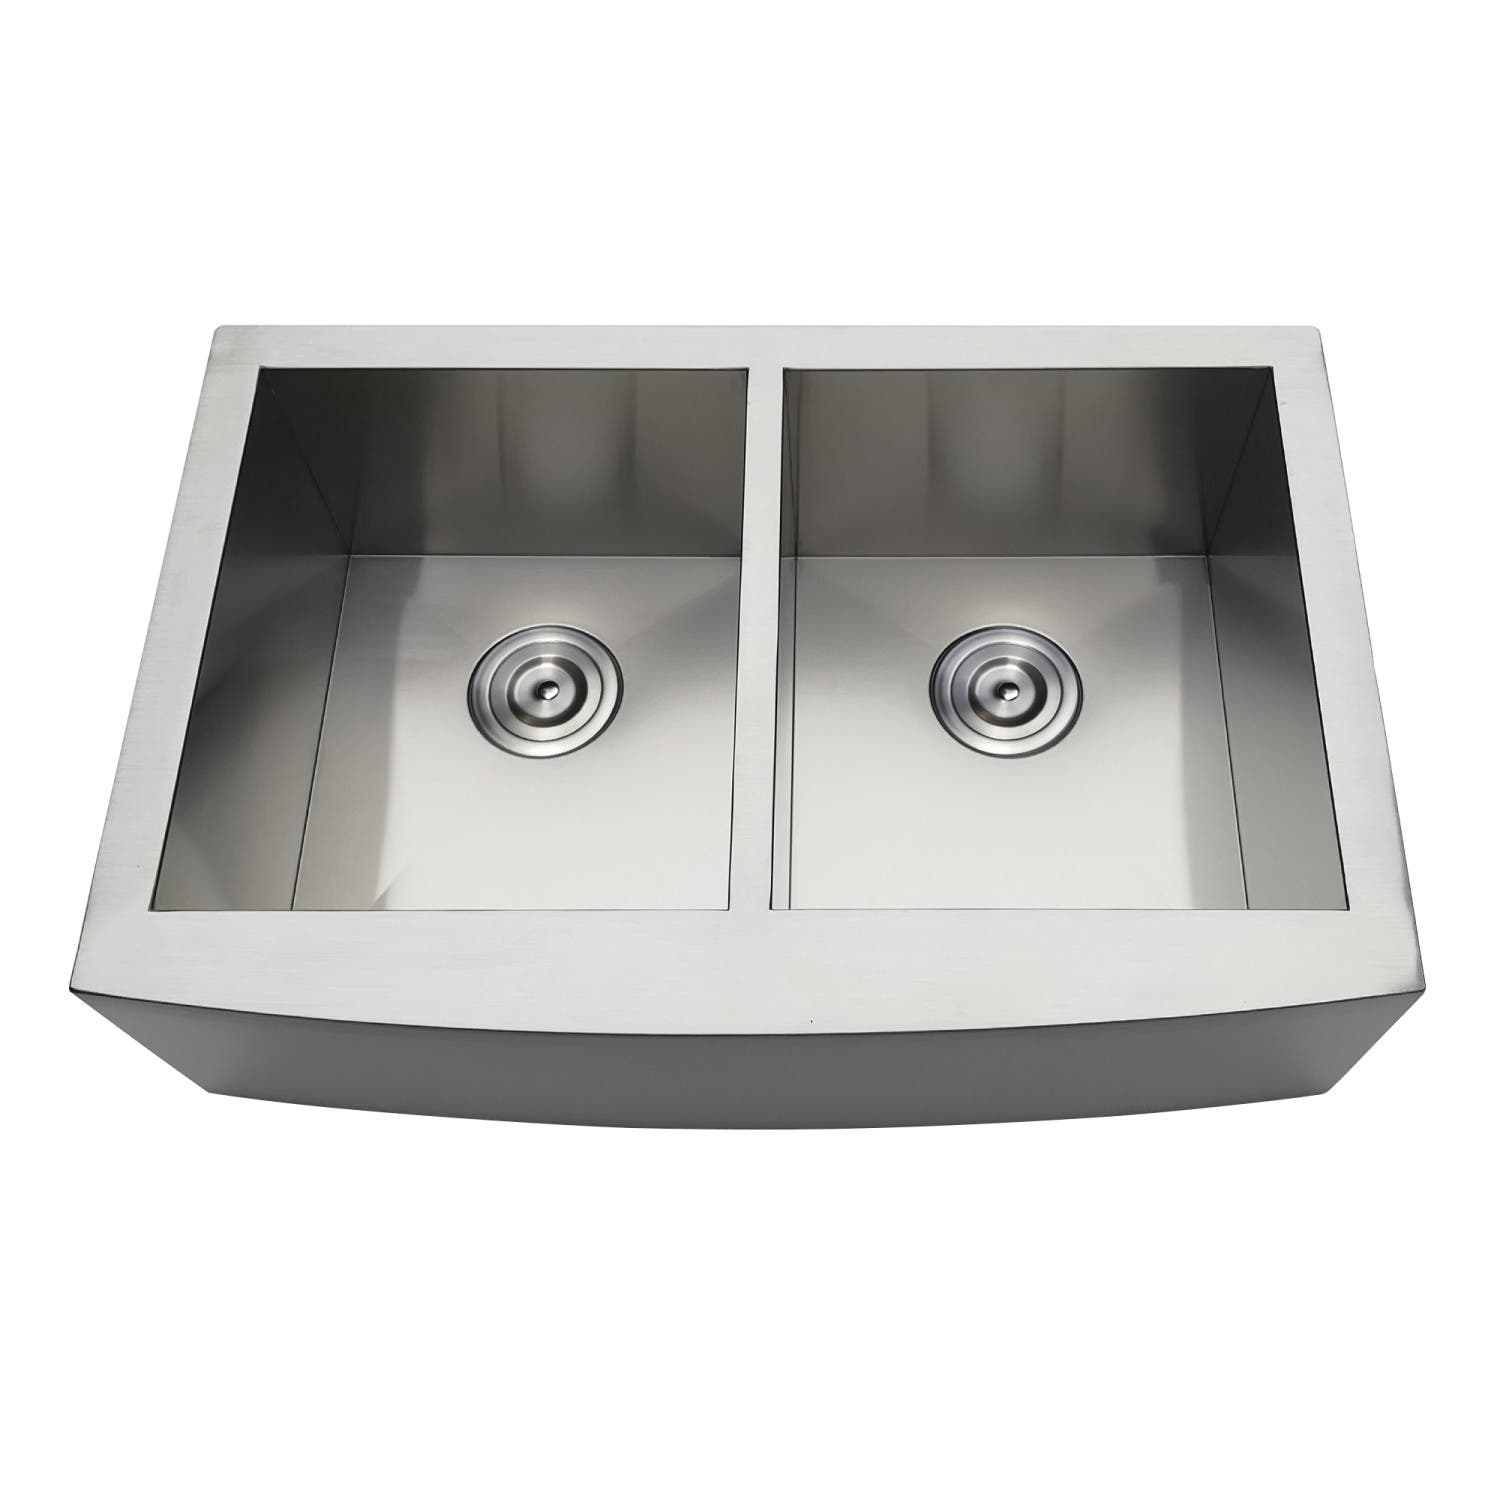 Gourmetier GKTDF30209 Drop-In Stainless Steel Double Bowl Farmhouse Kitchen  Sink